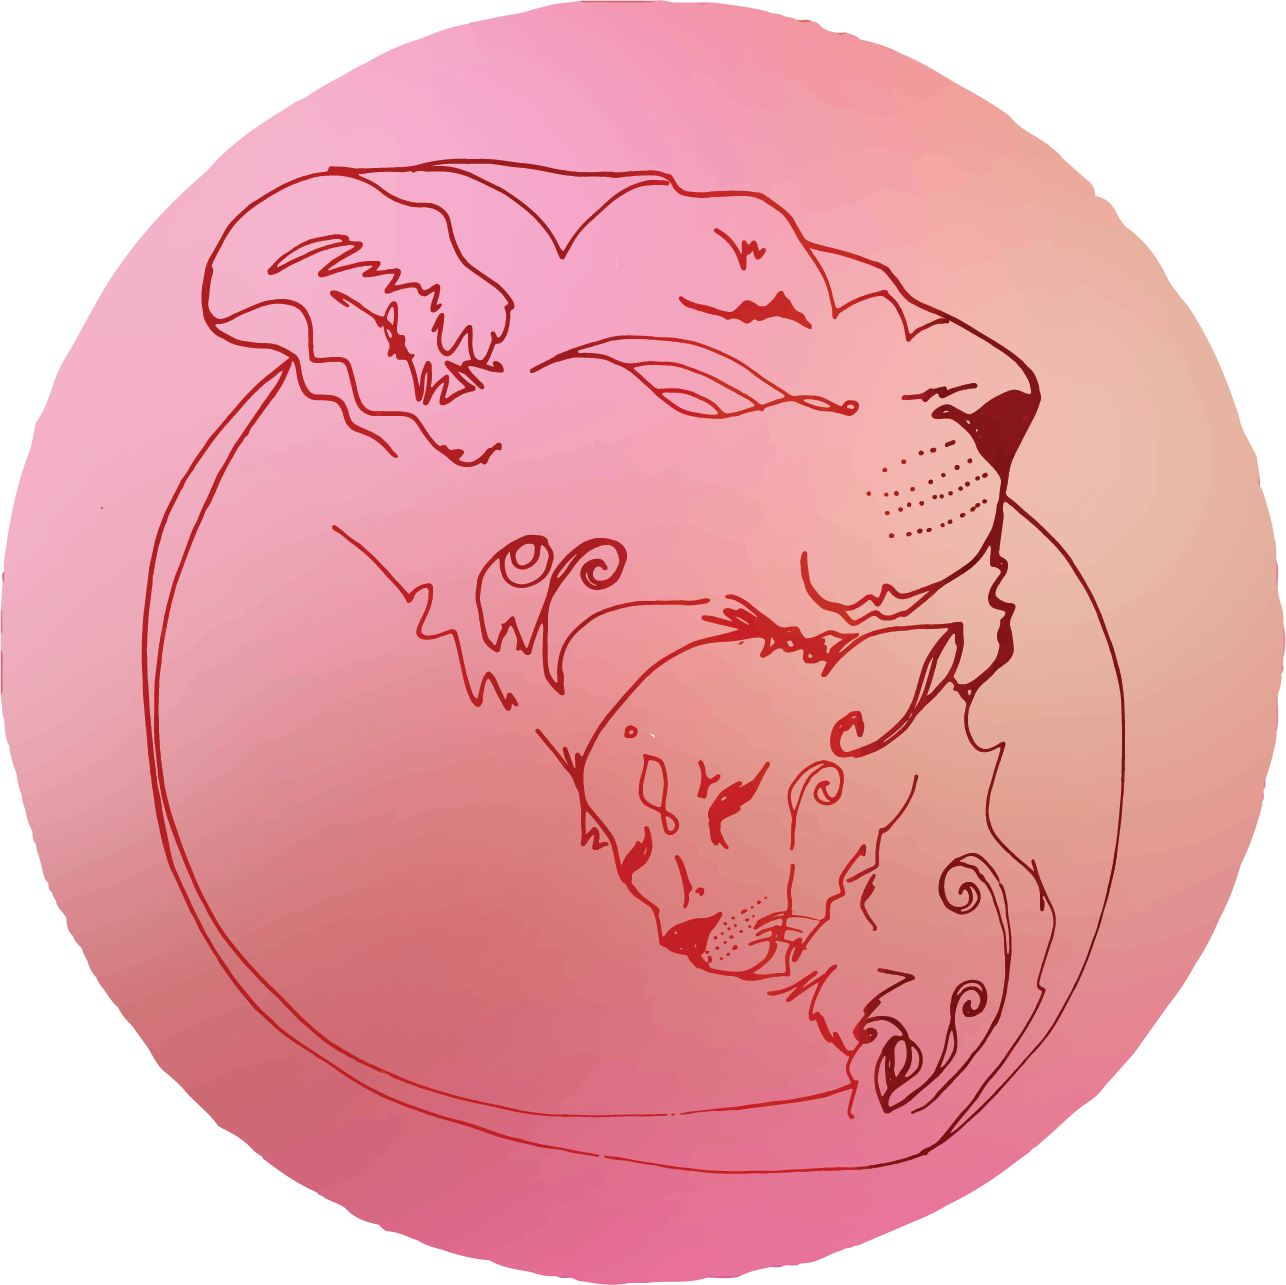 Lioness image - a type of parenting style